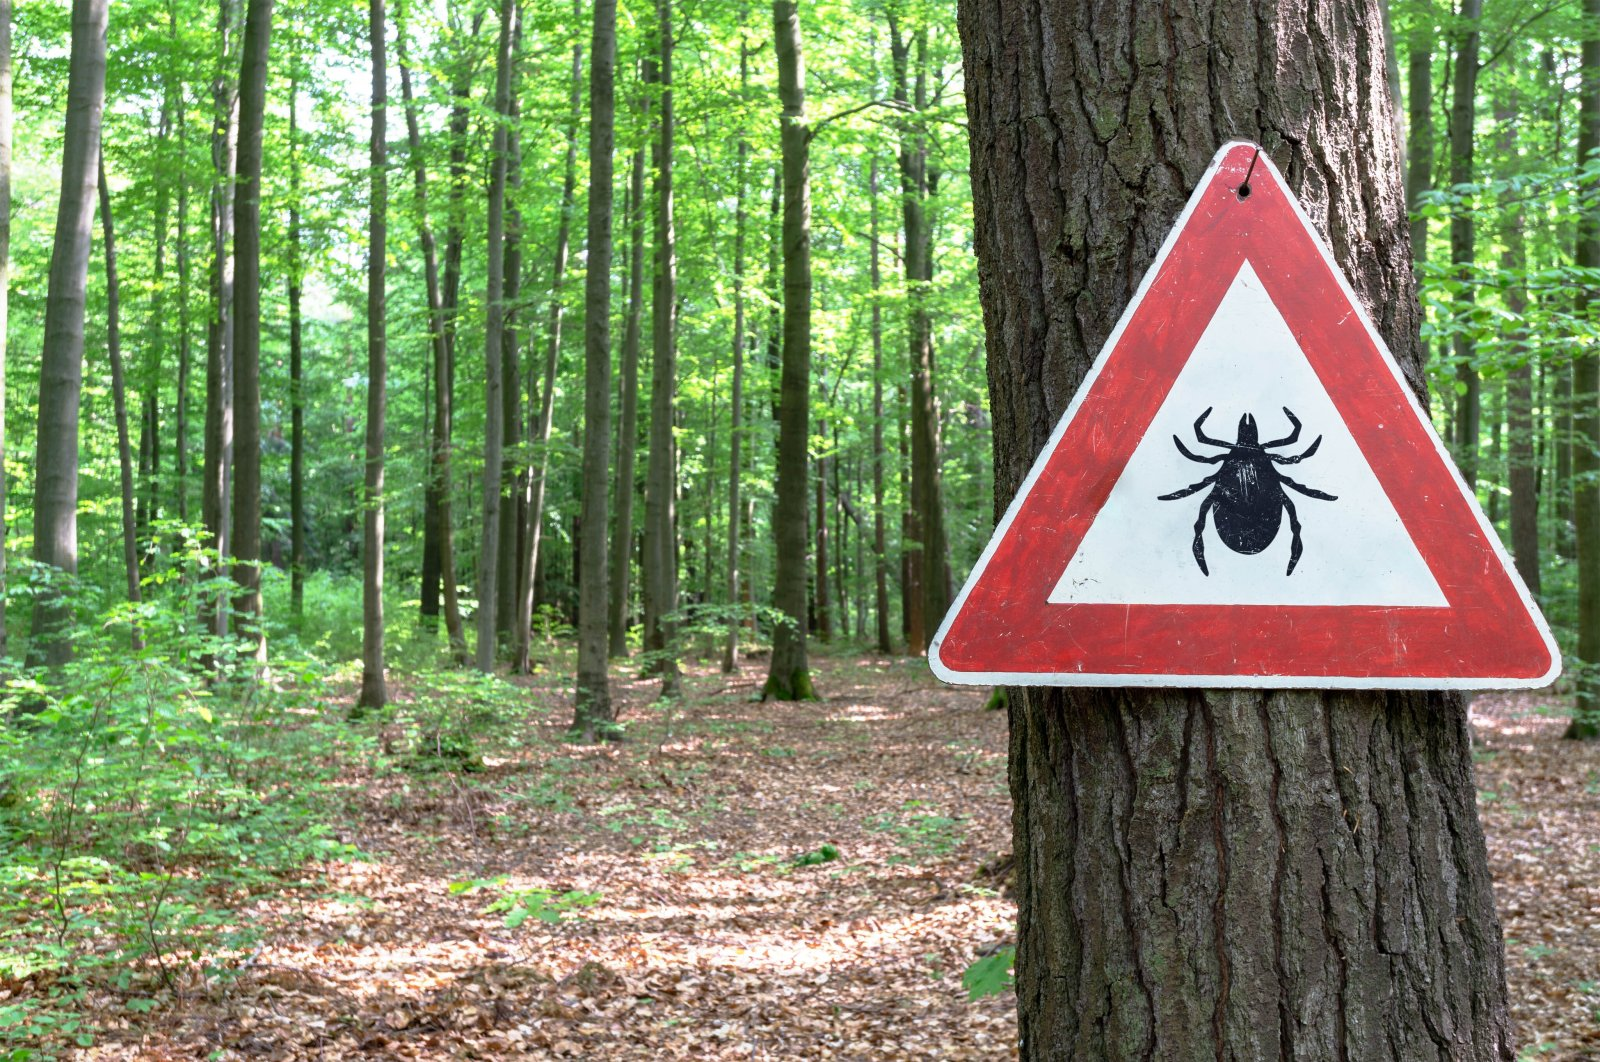 Ticks are carriers of the Crimean-Congo Hemorrhagic Fever disease that commonly affects people in rural areas or those spending time in green spaces without proper protection. (Shutterstock Photo)